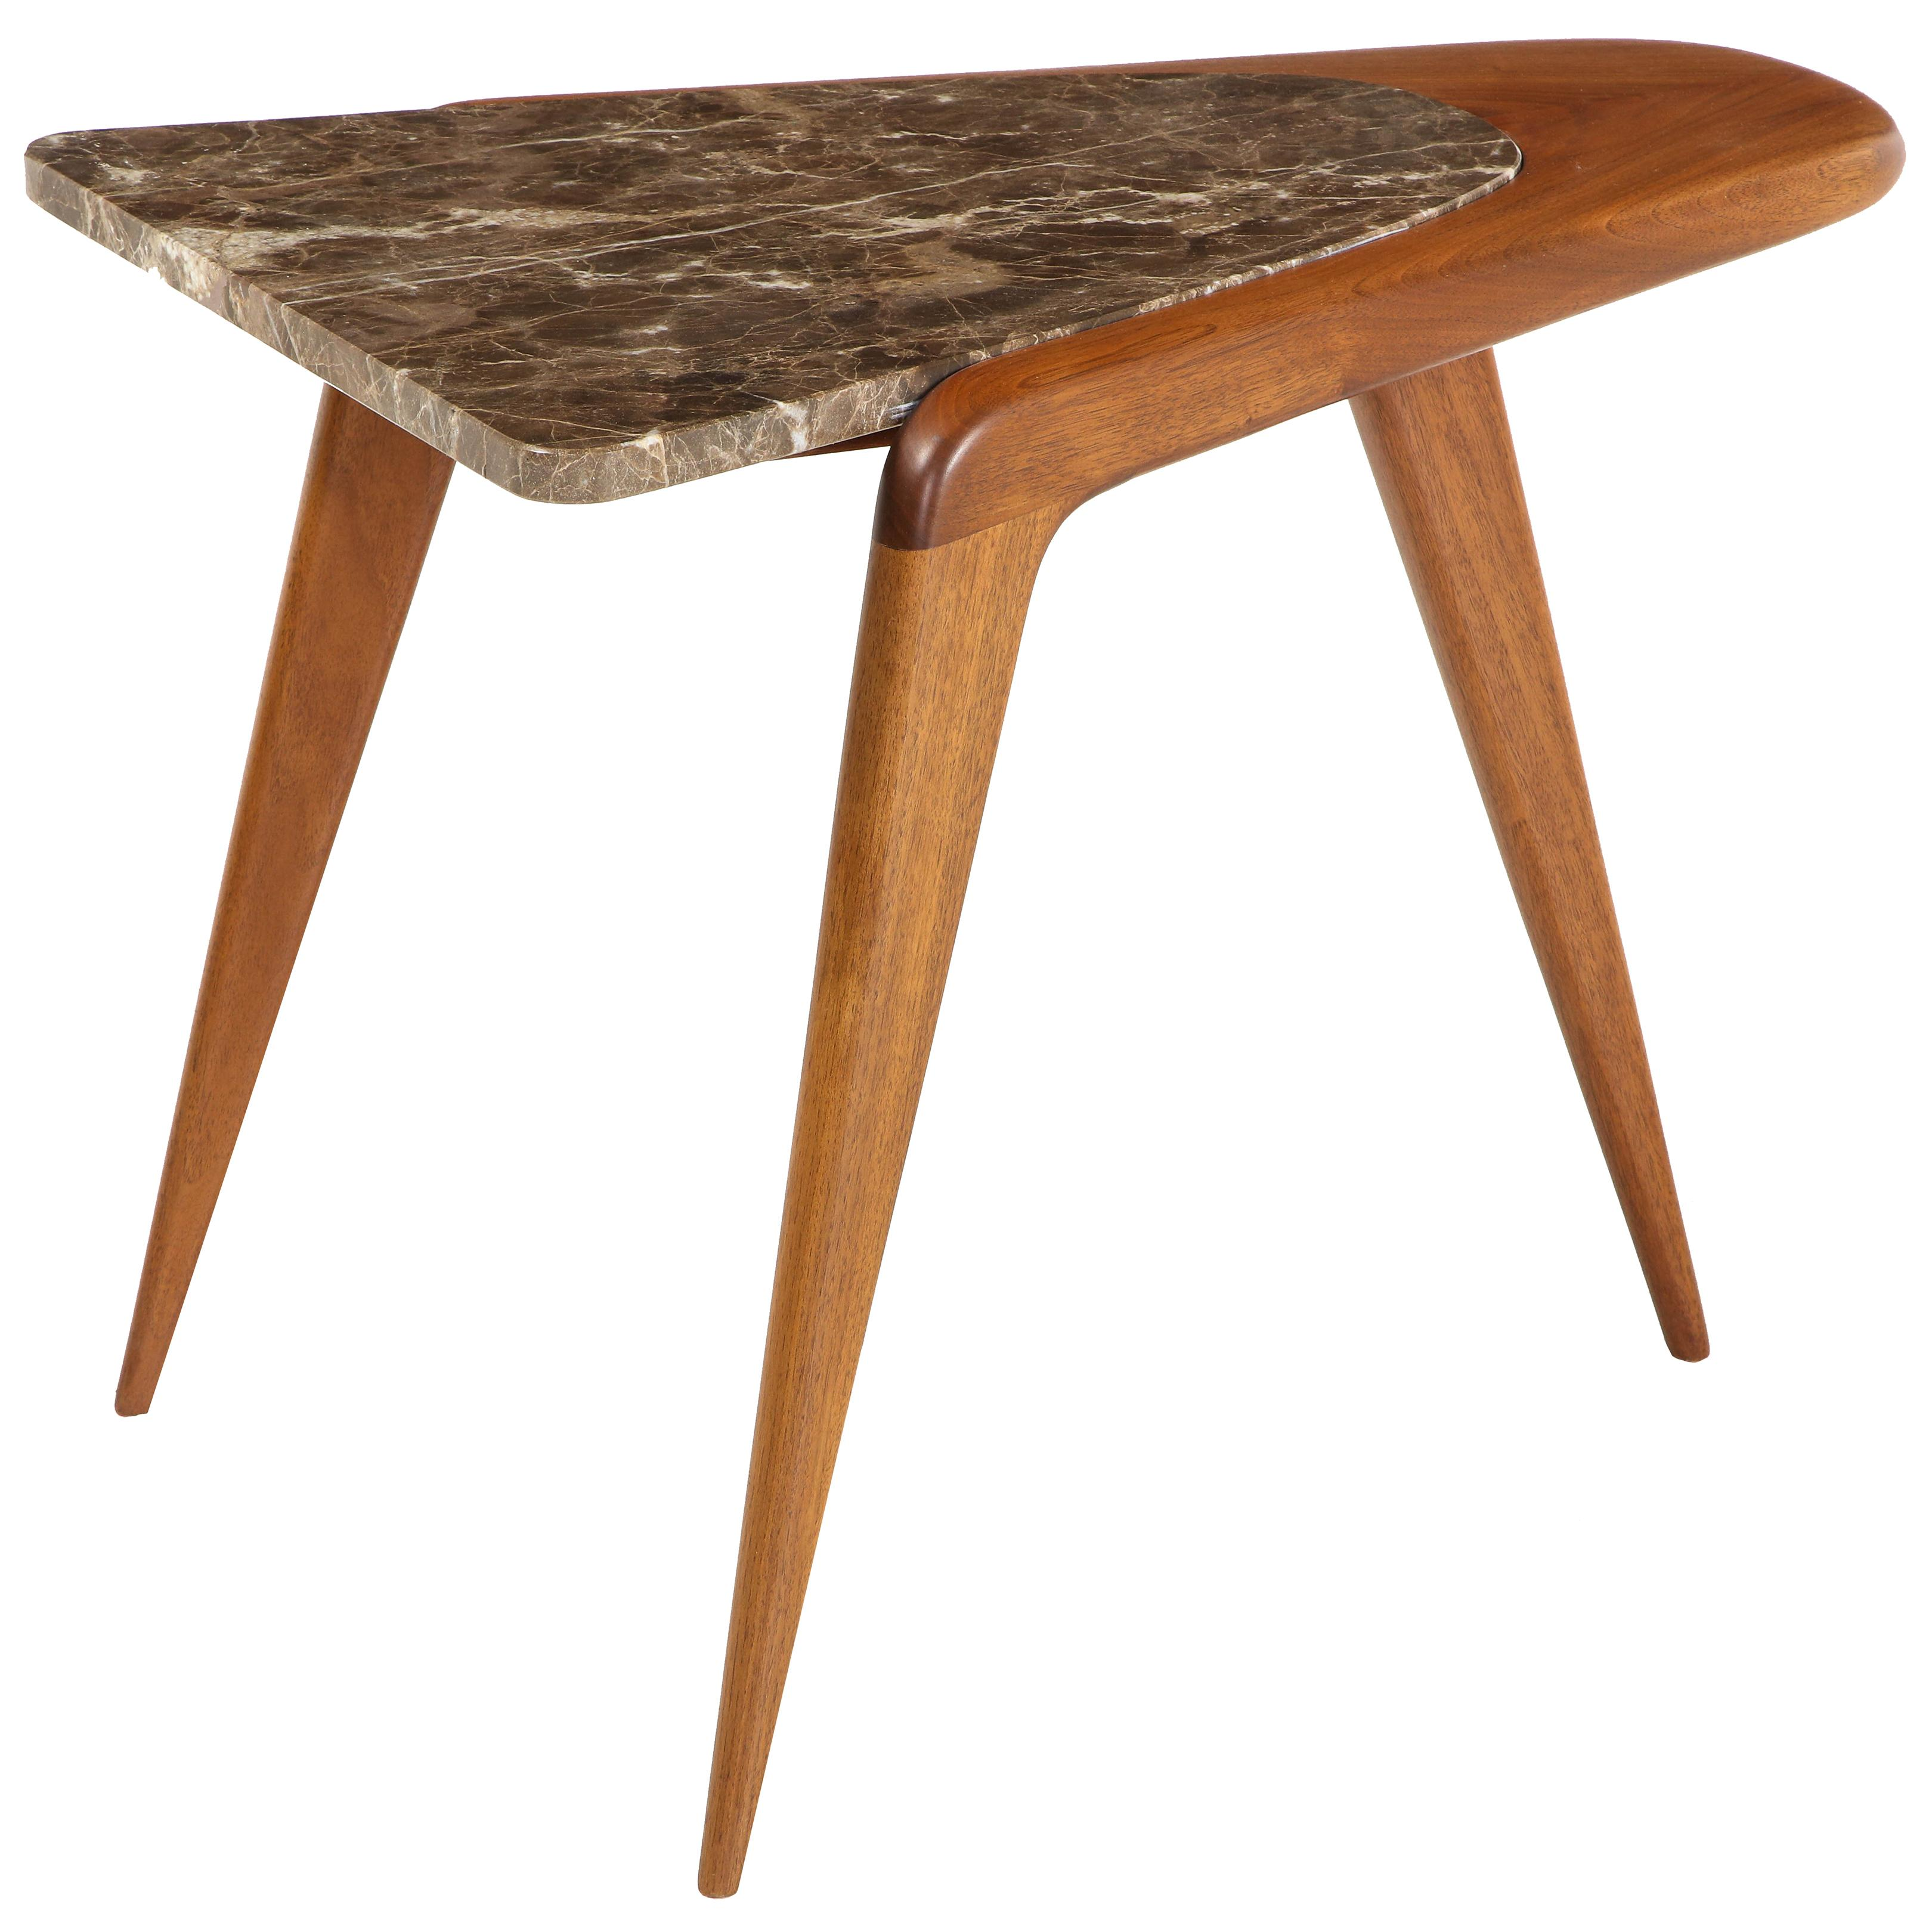 antique and vintage end tables for main master spindle wood accent table winsome target furniture coffee oriental desk lamp chairside modern metal legs home decor art small